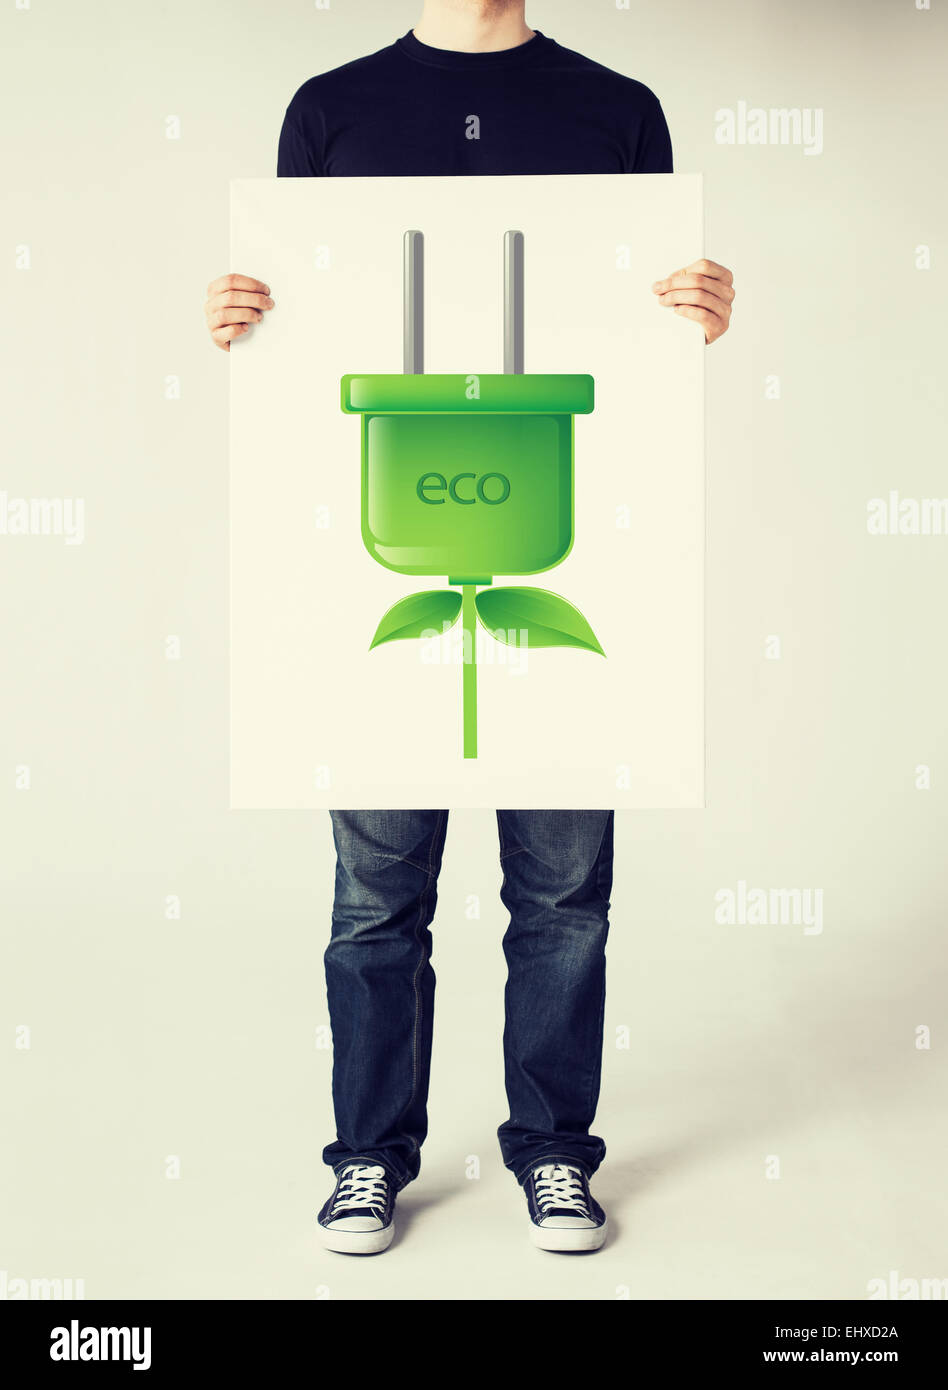 hands holding picture of green electrica ecol plug - Stock Image